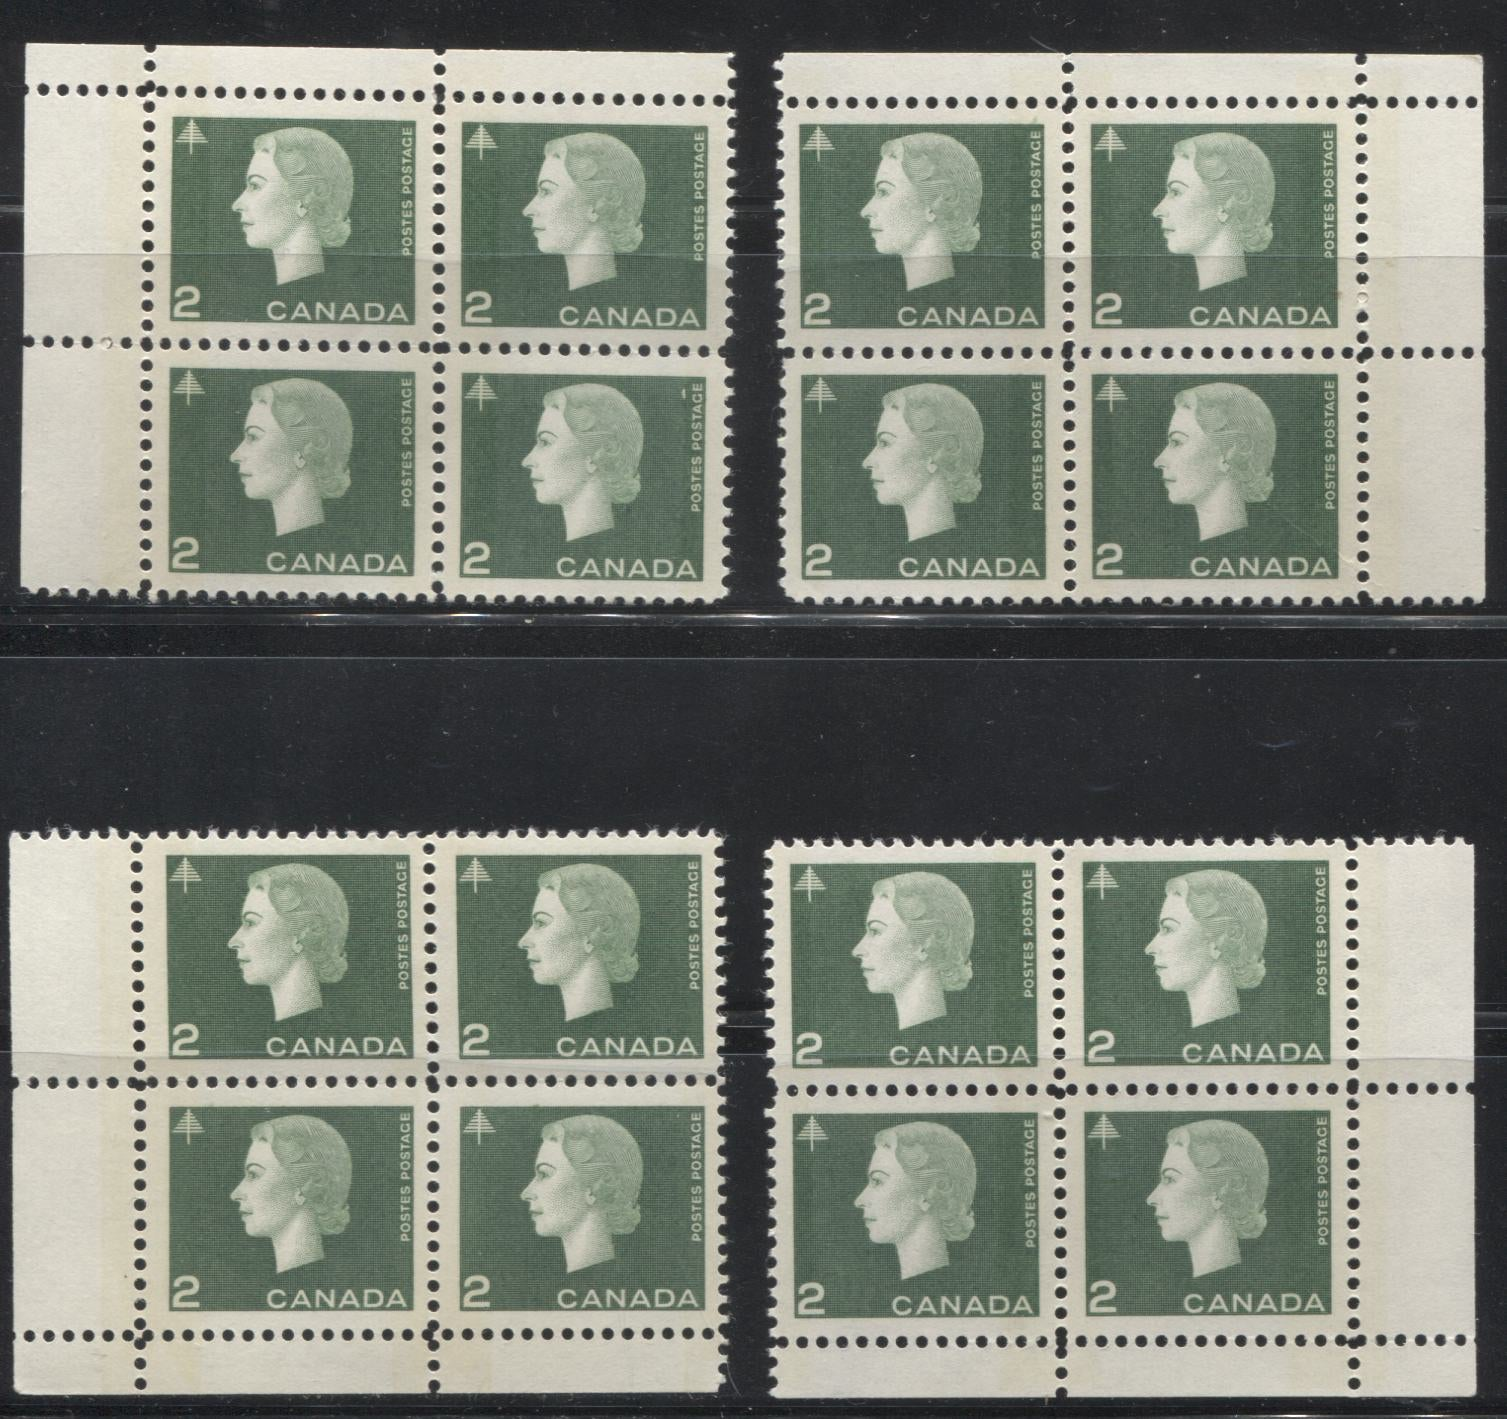 Canada #402p 2c Green Queen Elizabeth II, 1962-1967 Cameo Issue, A VFNH Matched Set of Winnipeg Tagged Field Stock Corner Blocks With Wide Selvedge, and Light Strength Tagging